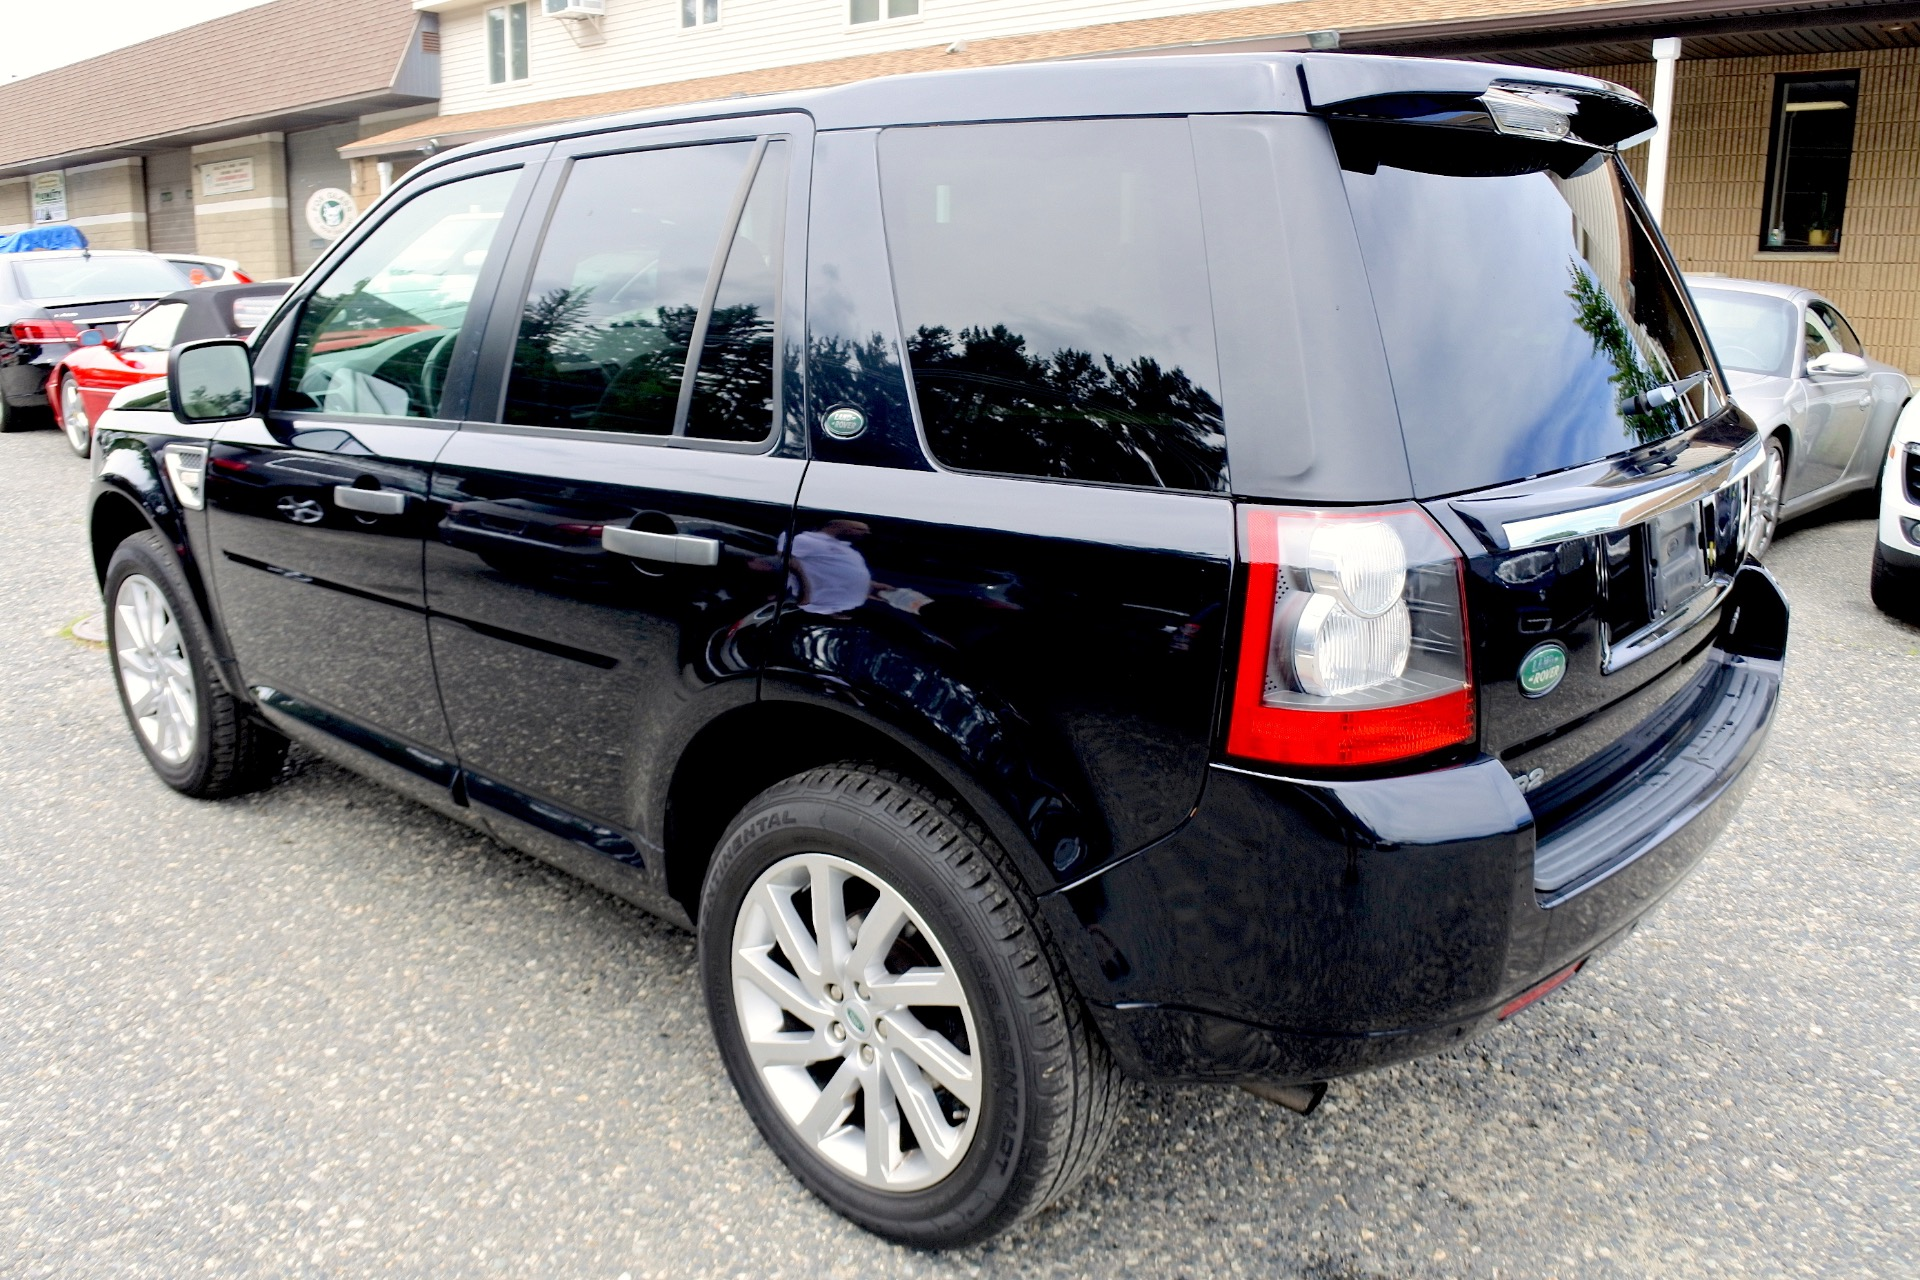 Used 2012 Land Rover Lr2 HSE AWD Used 2012 Land Rover Lr2 HSE AWD for sale  at Metro West Motorcars LLC in Shrewsbury MA 3